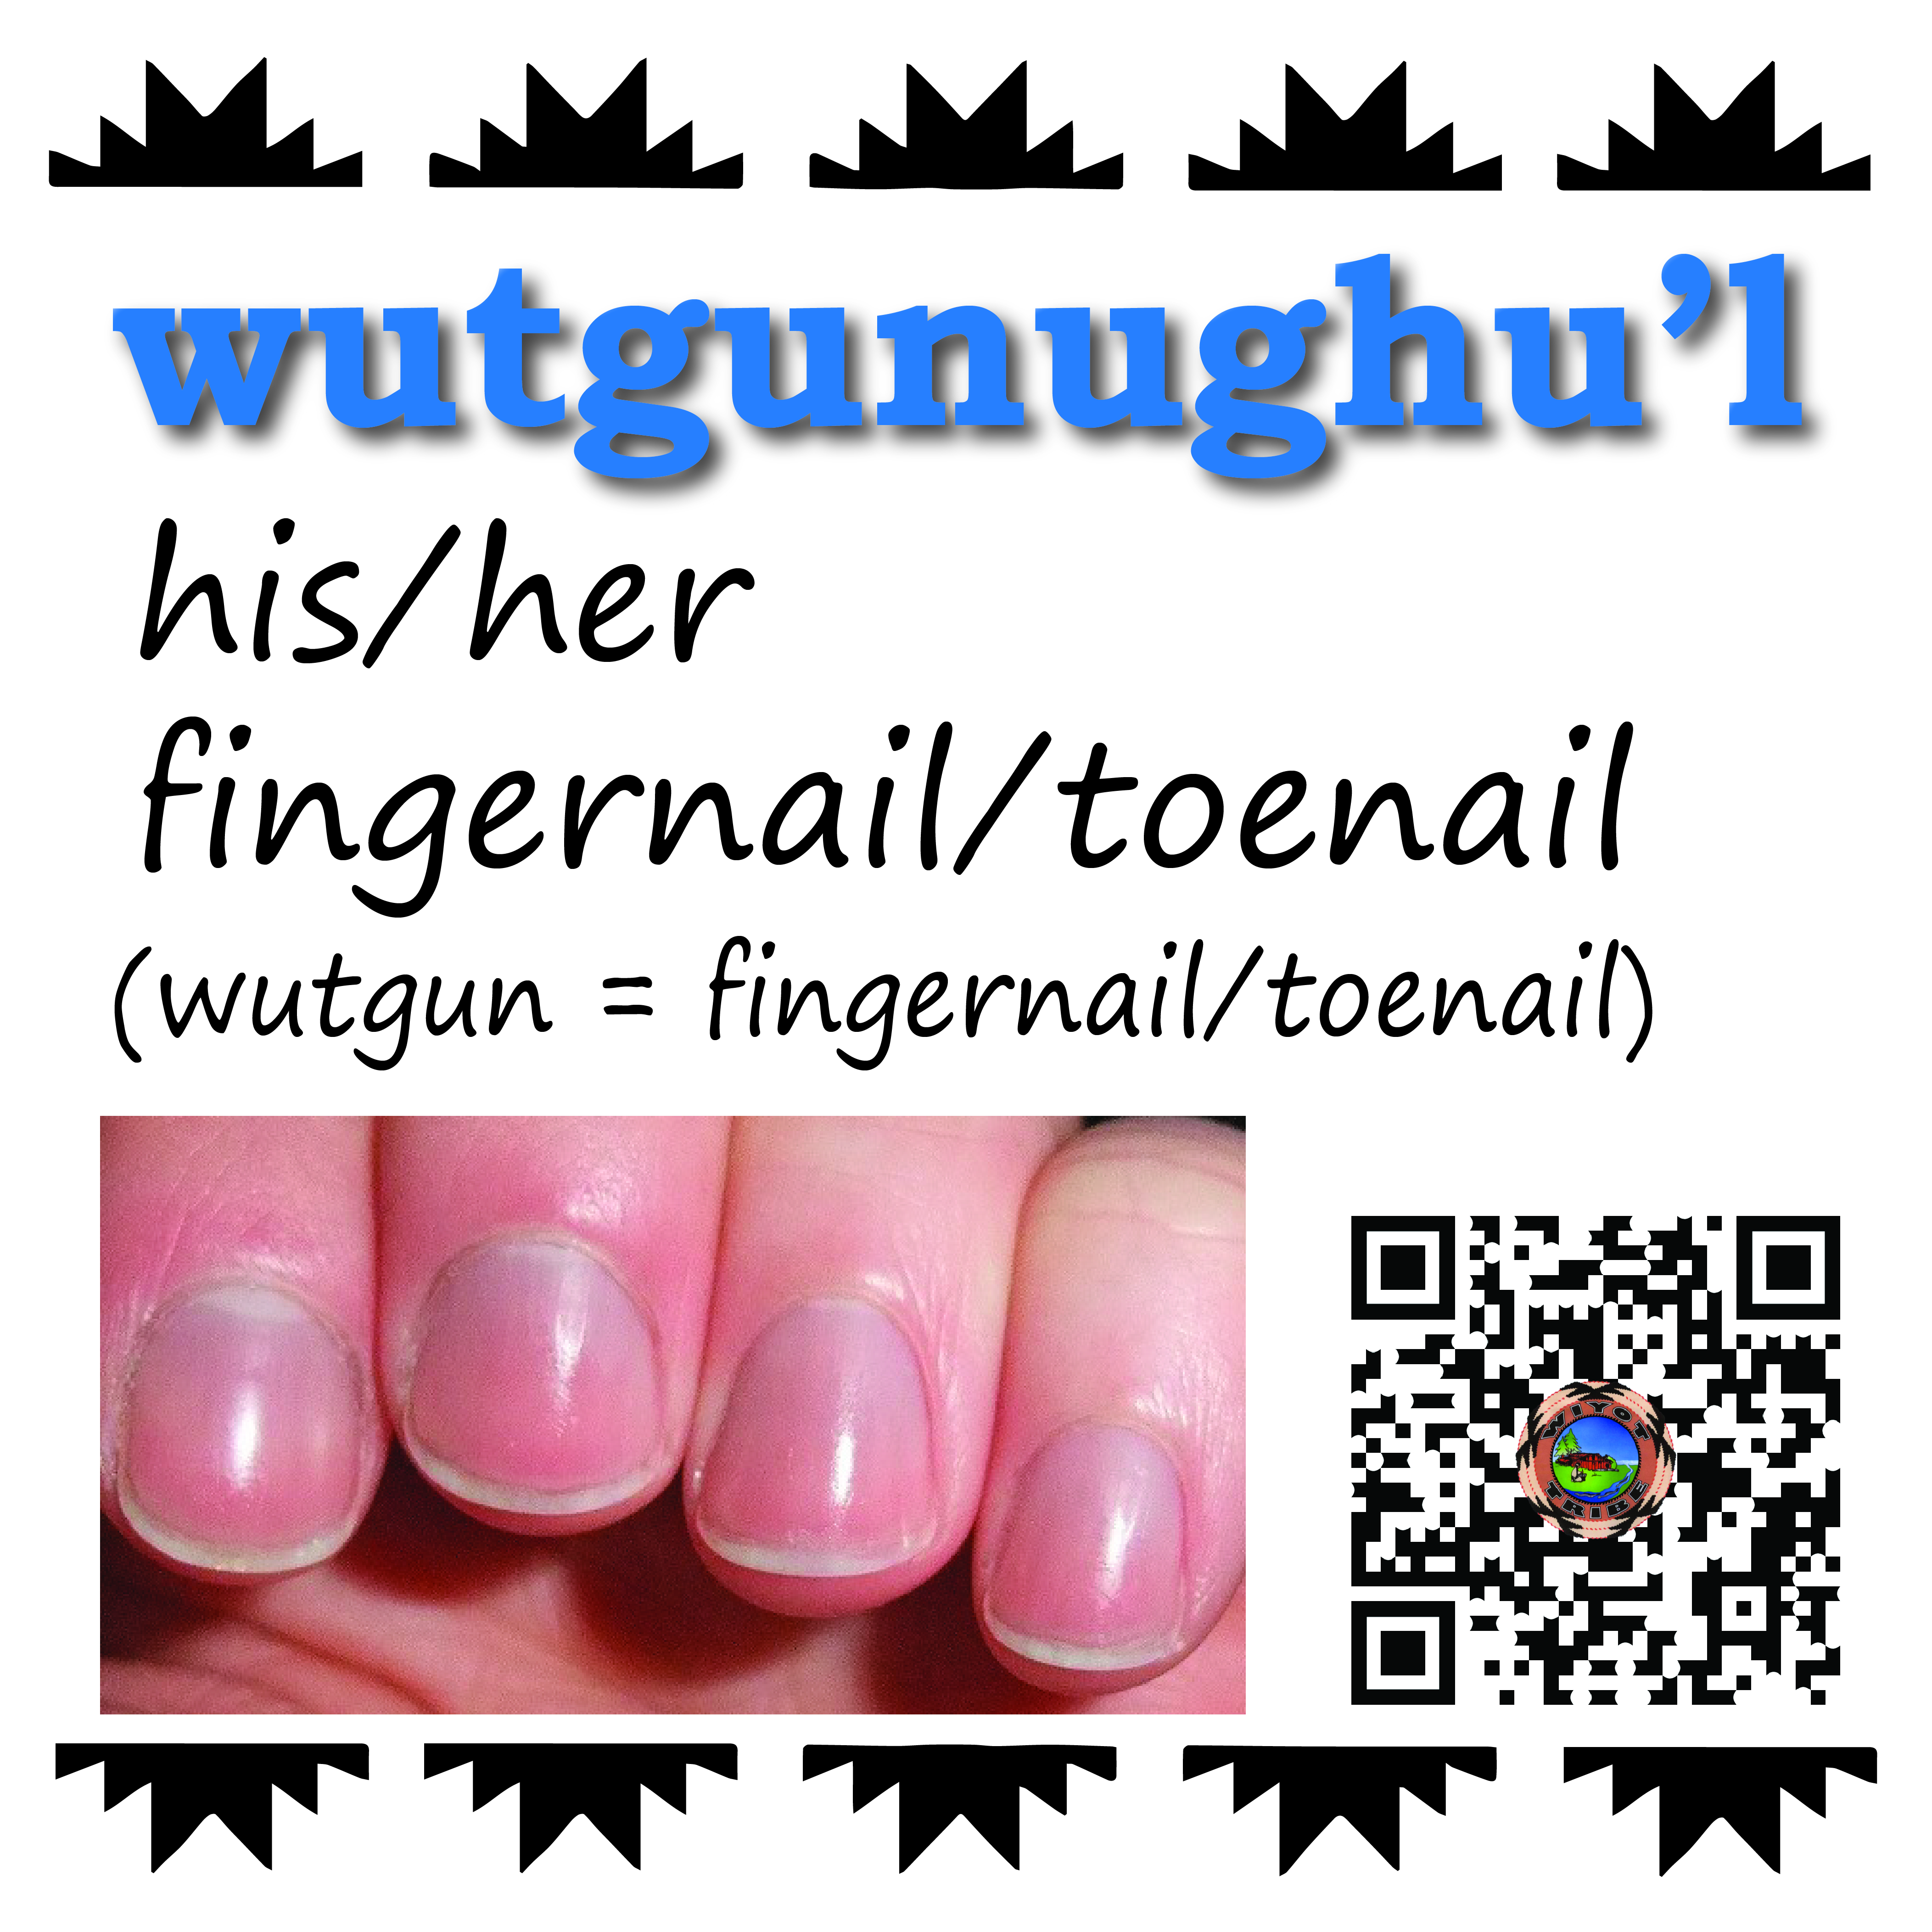 wutgunughul_his_her_someones_fingernail_toenail